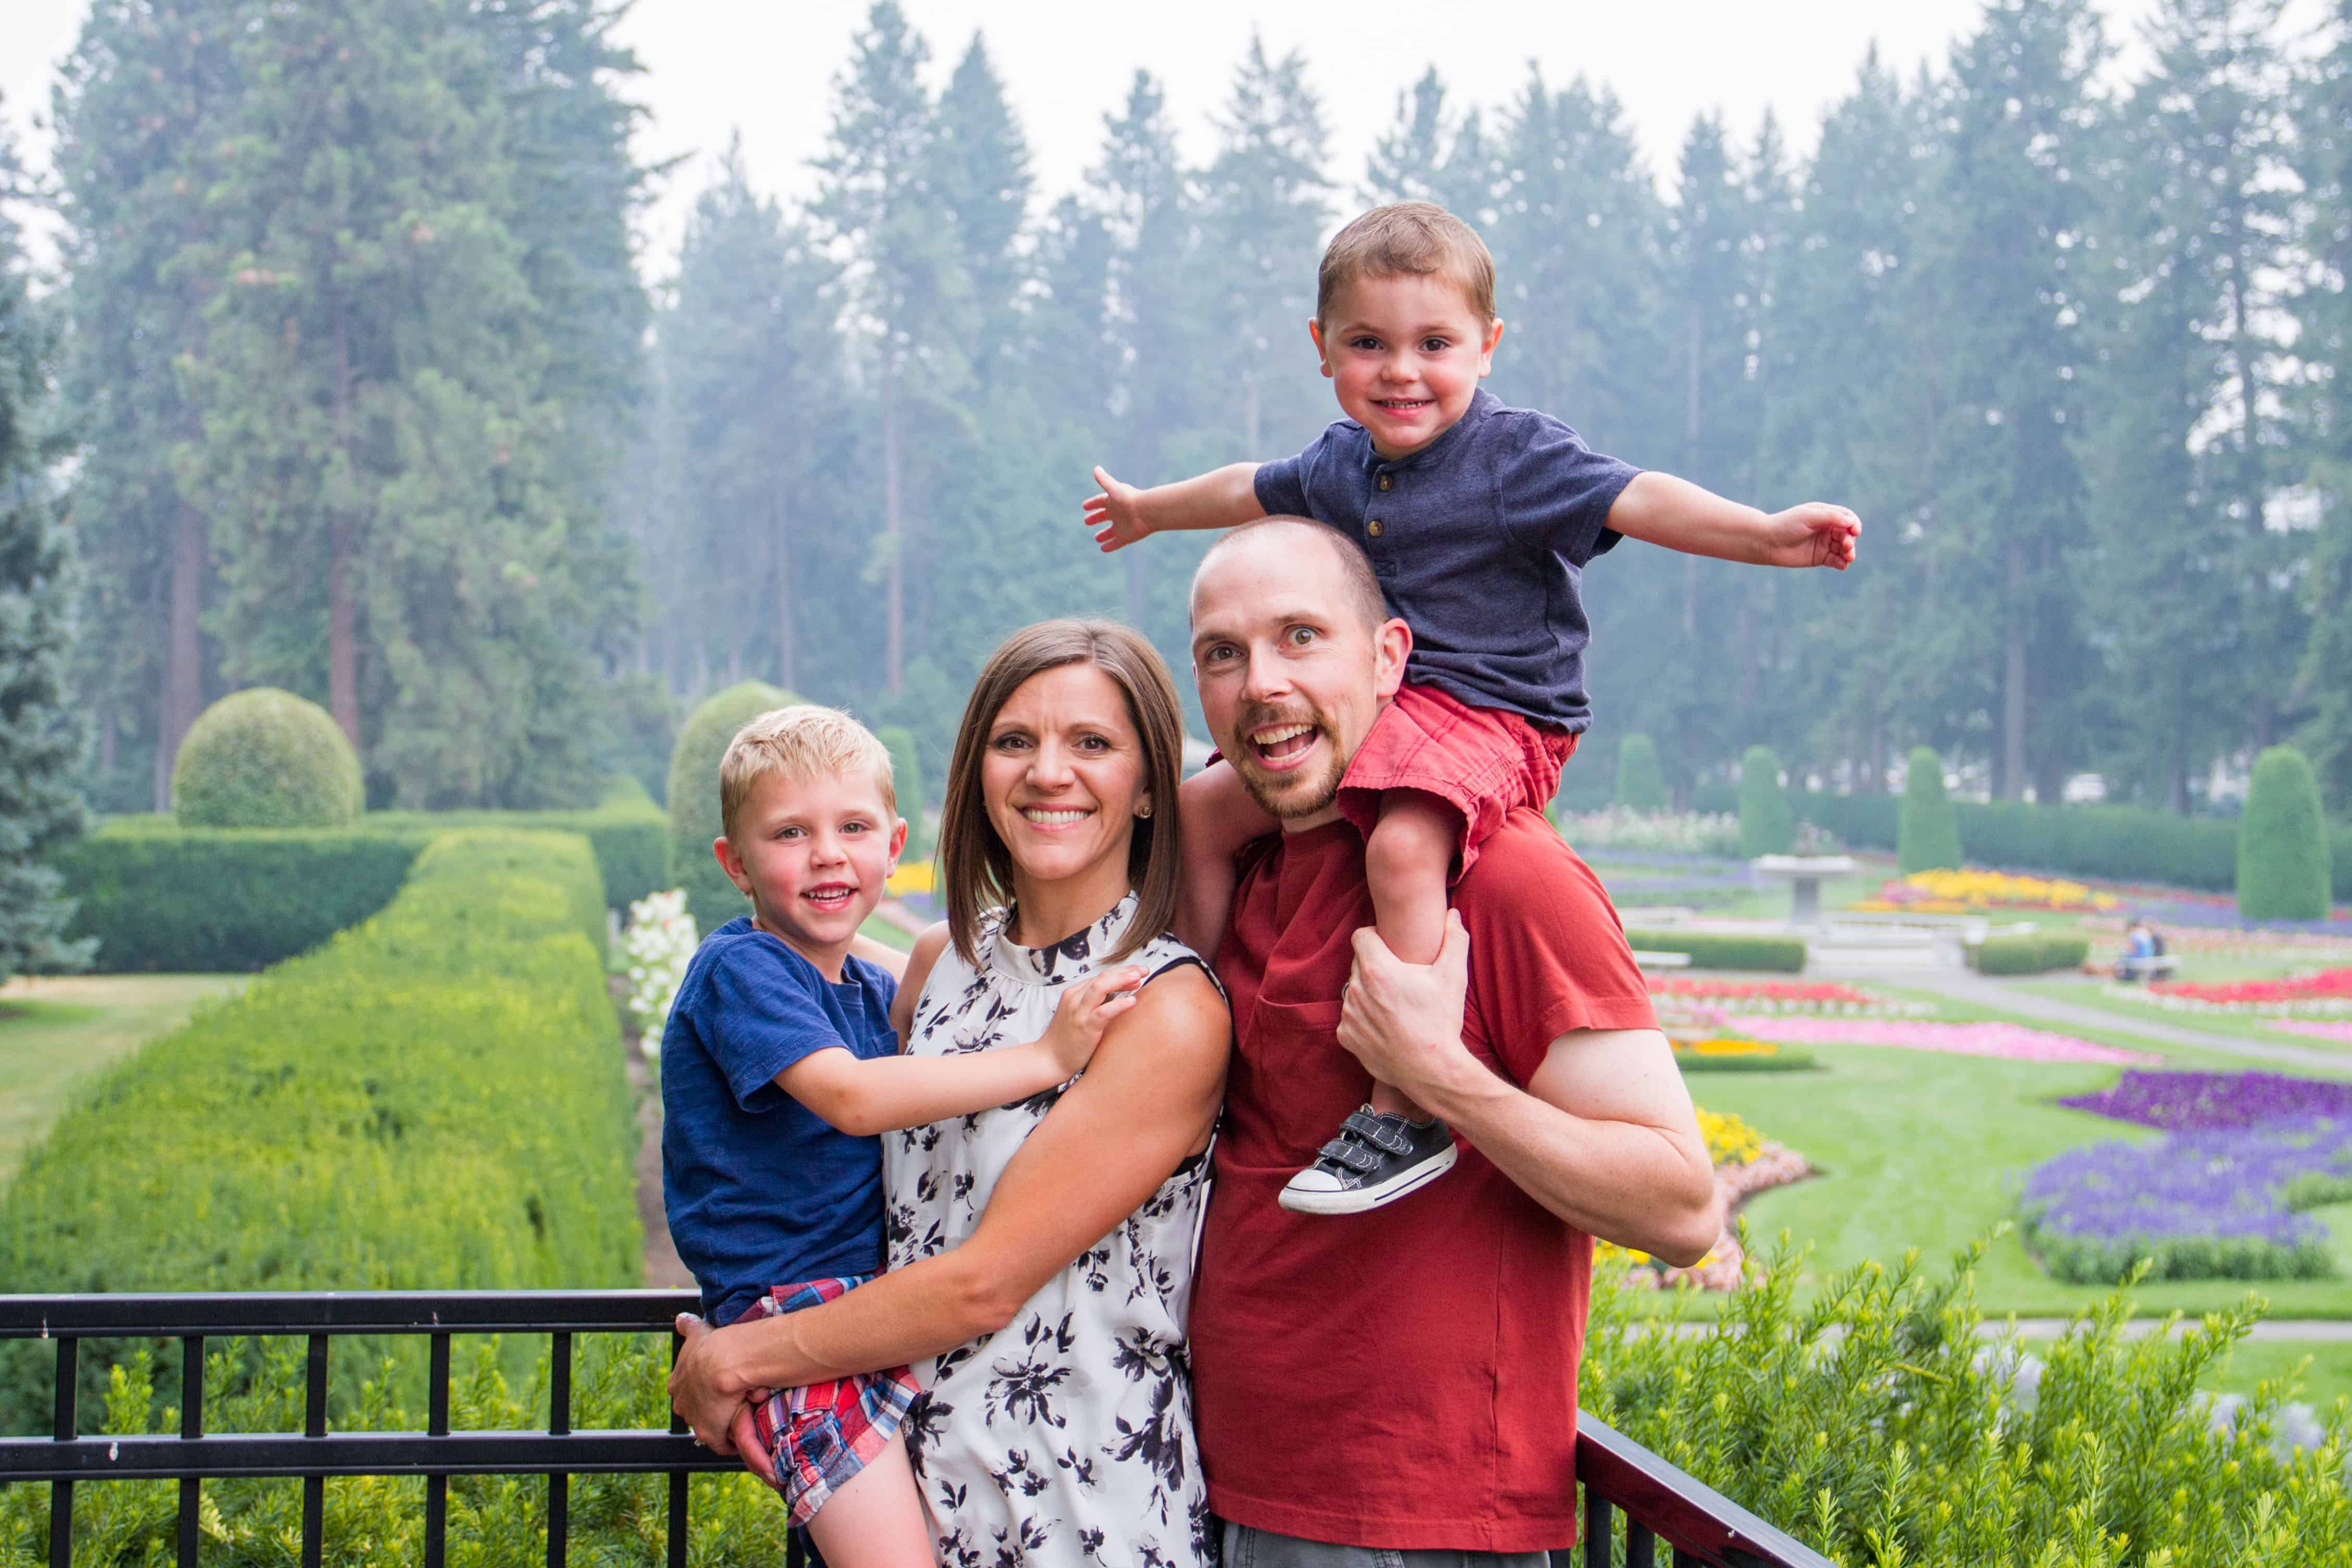 Cheree Sauer and her adorable family!